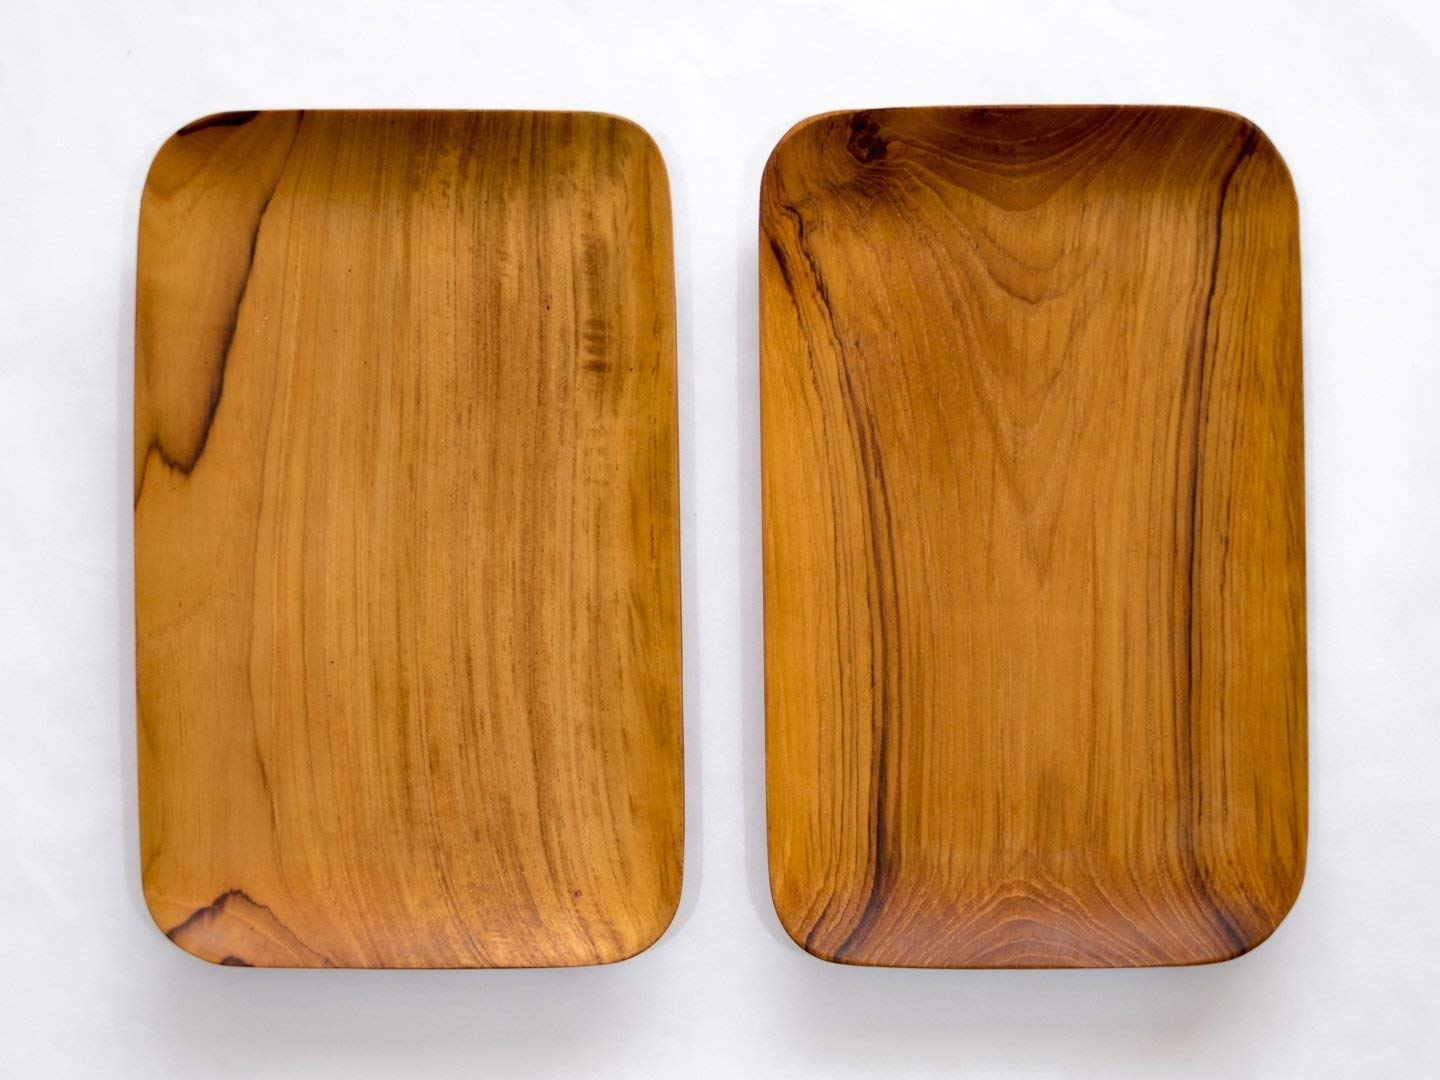 Bali Harvest Set of 2 Handmade Wooden Rectangle Plates | Premium Quality Teak Root Wood | Tray | Salad Sushi Server Plate | Eco Friendly | Vegan Gift | Natural Finishing